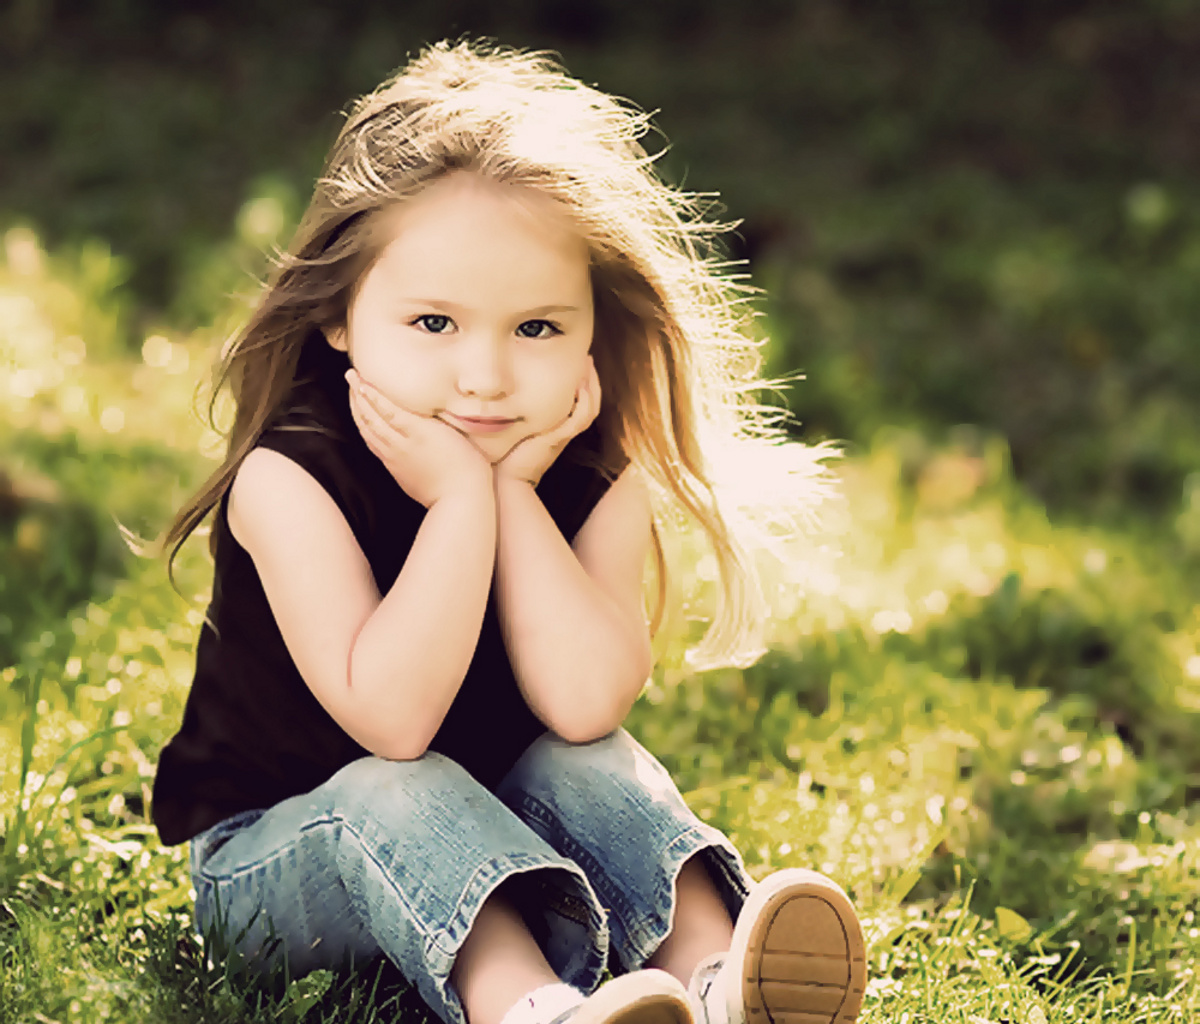 Small Girl Love Wallpaper : Baby Wallpapers Desktop Wallpapers